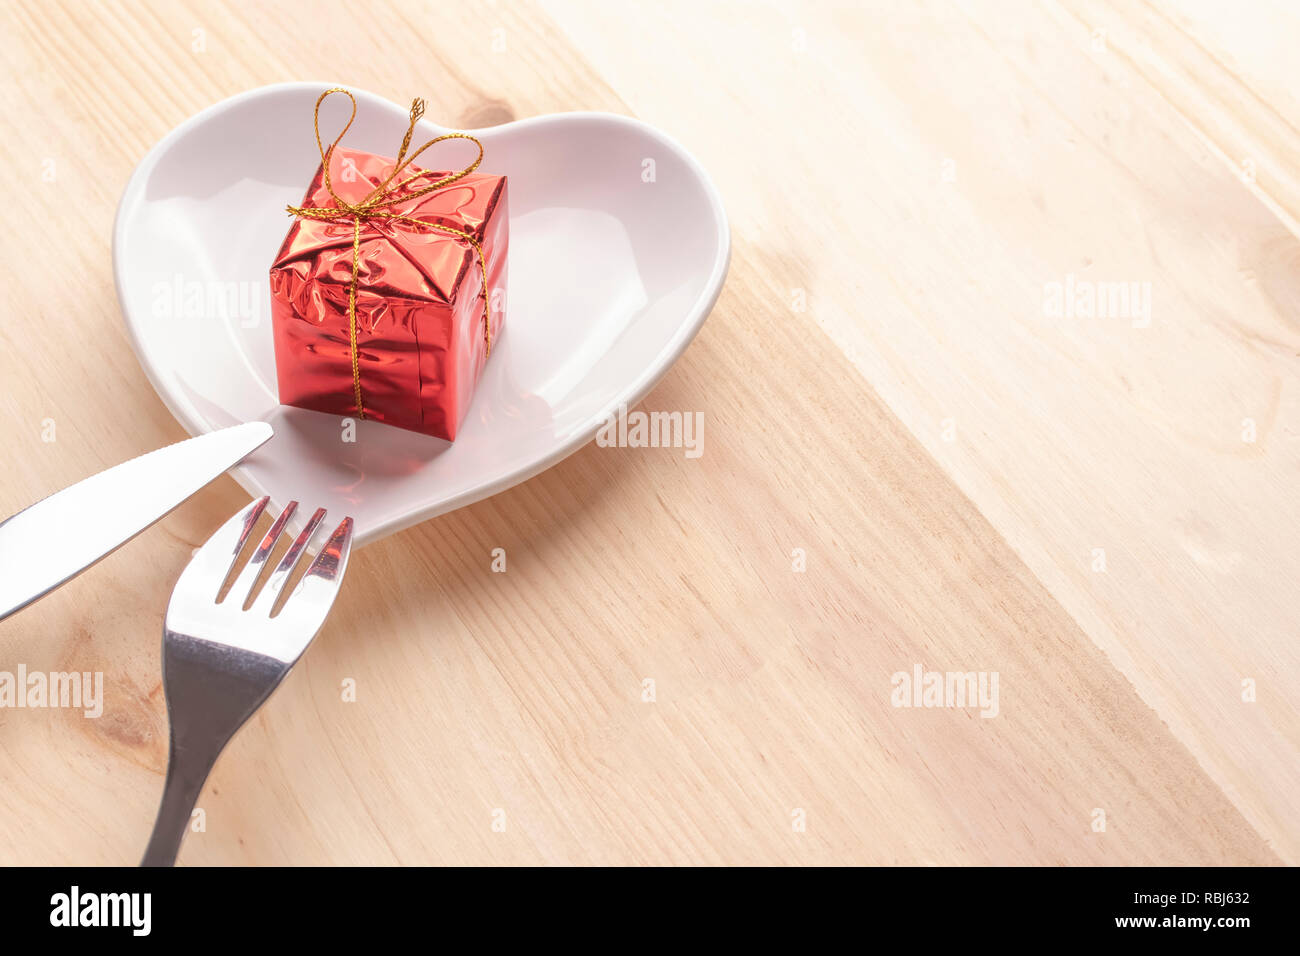 A gift in bright red packaging on a white plate in the shape of a heart on a wooden background with a fork and knife. Festive background for Valentine - Stock Image